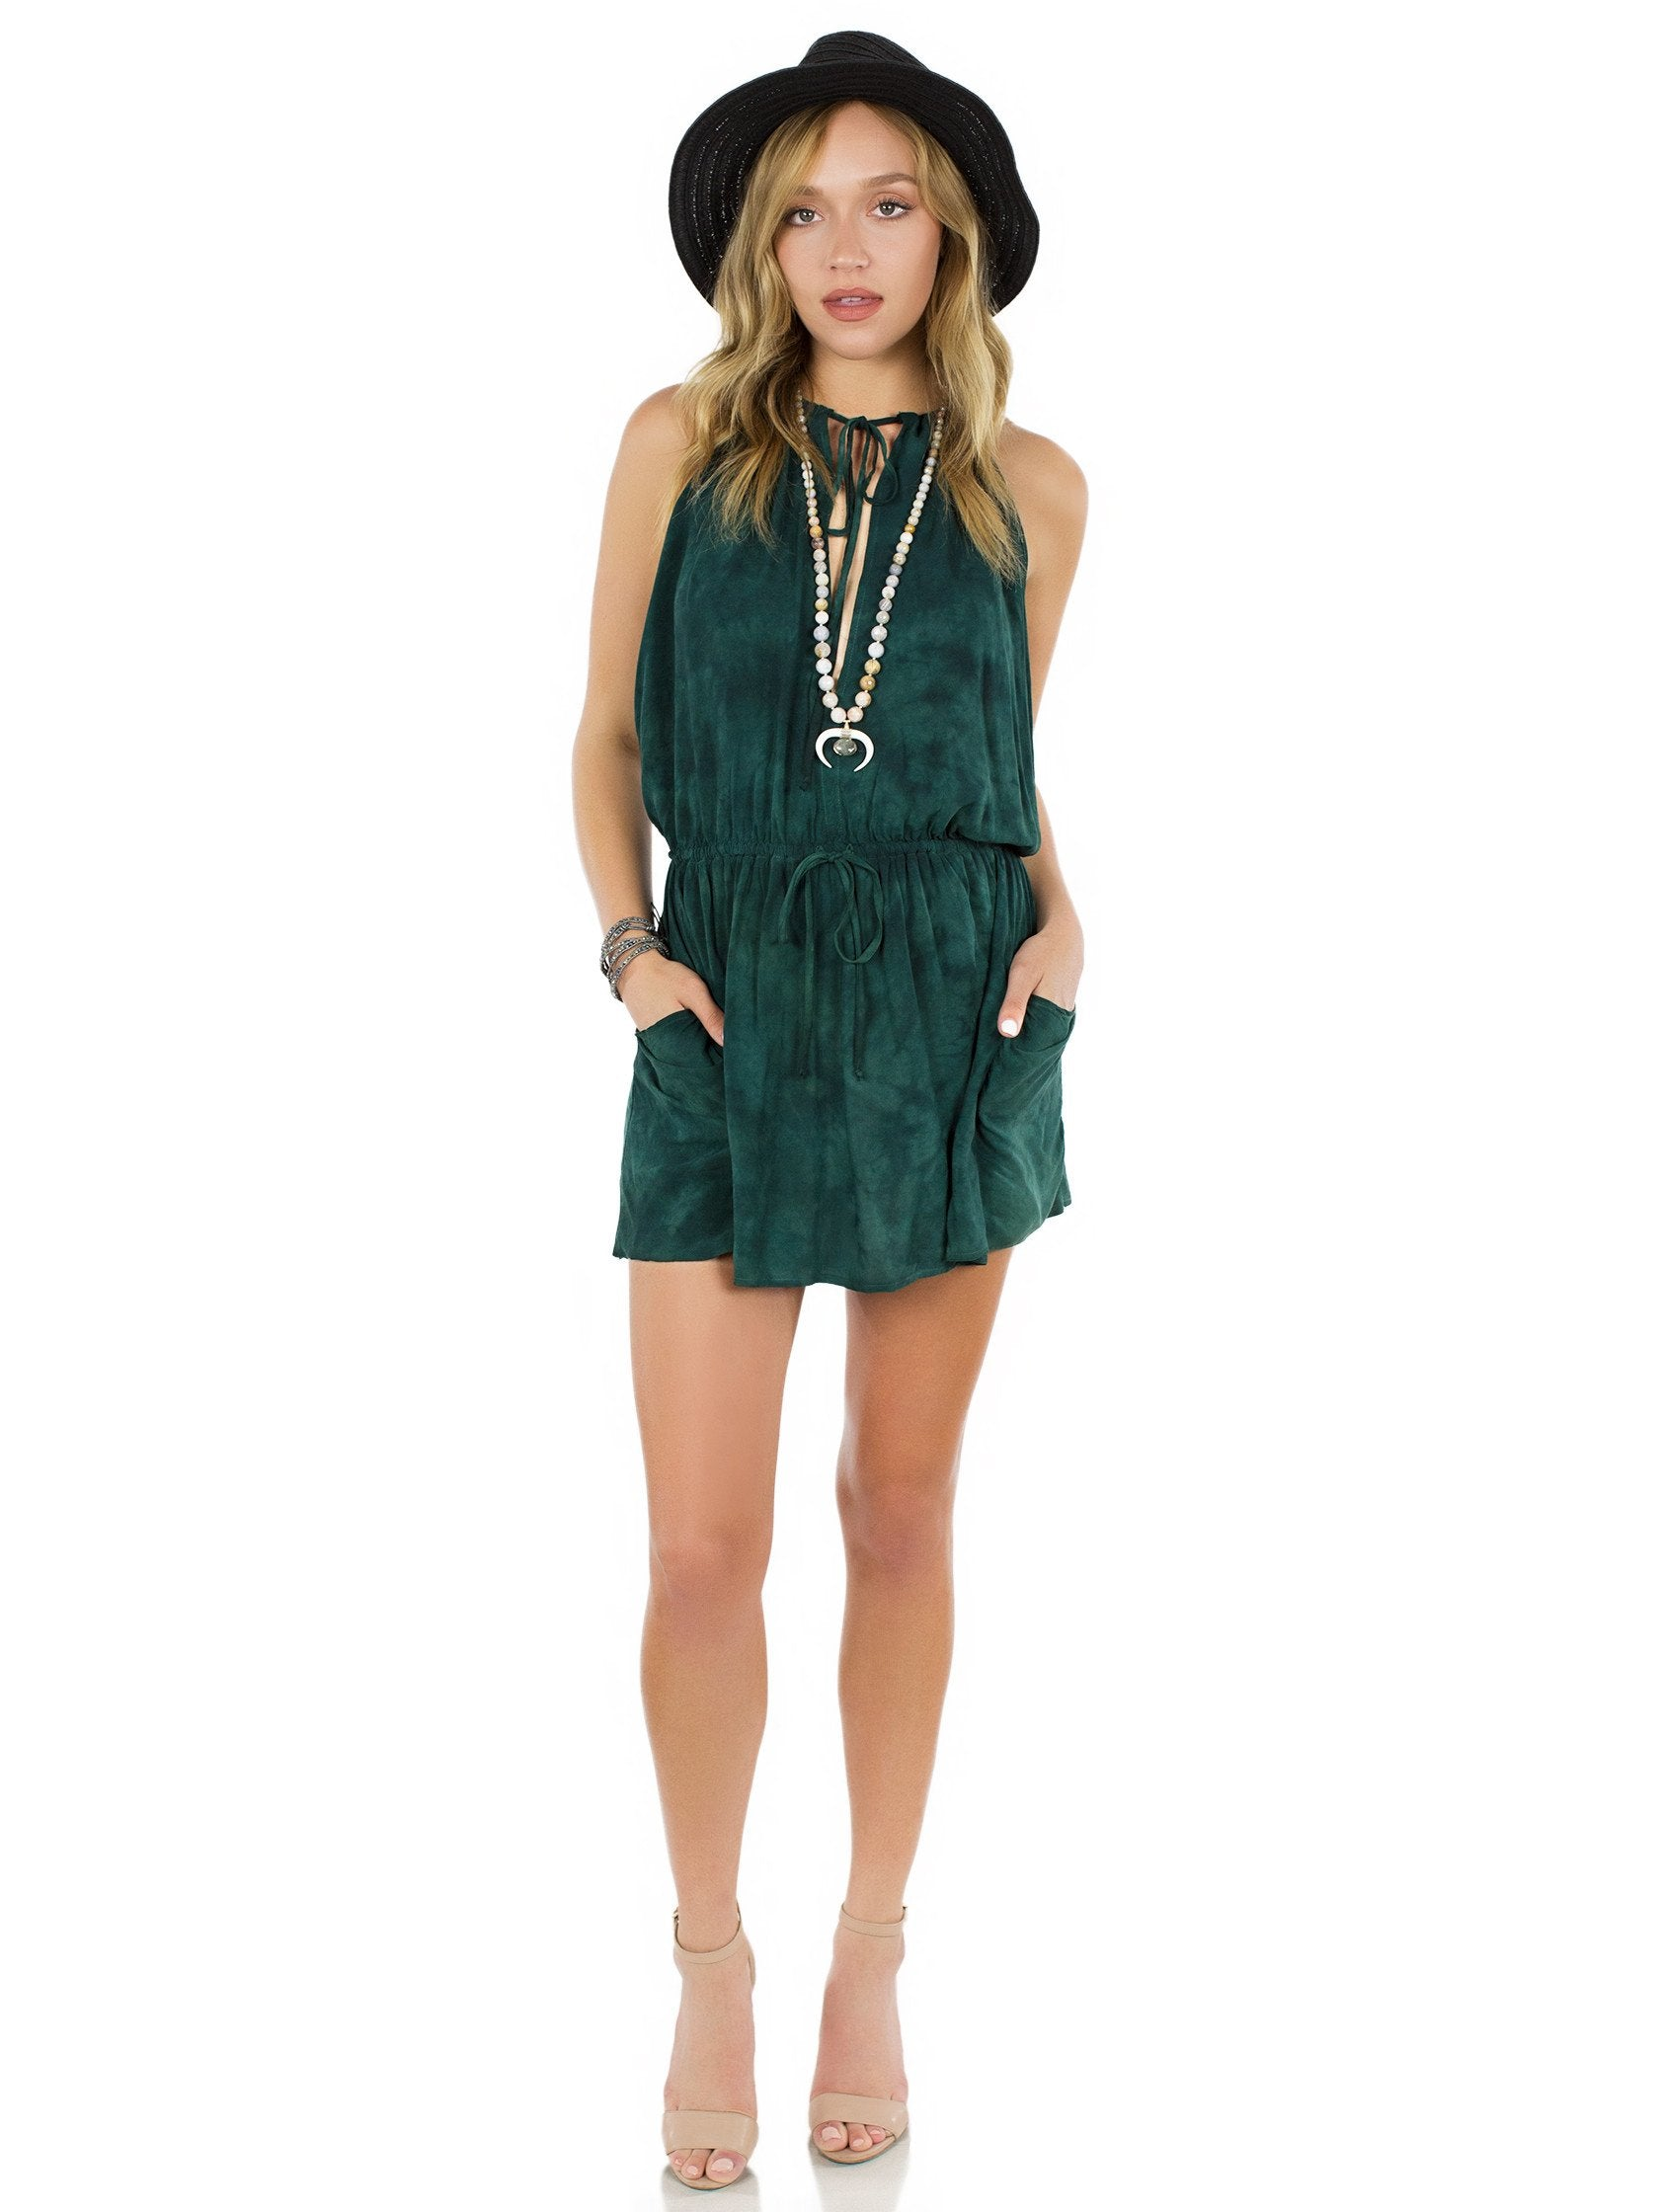 Girl outfit in a dress rental from Blue Life called New Island Halter Dress